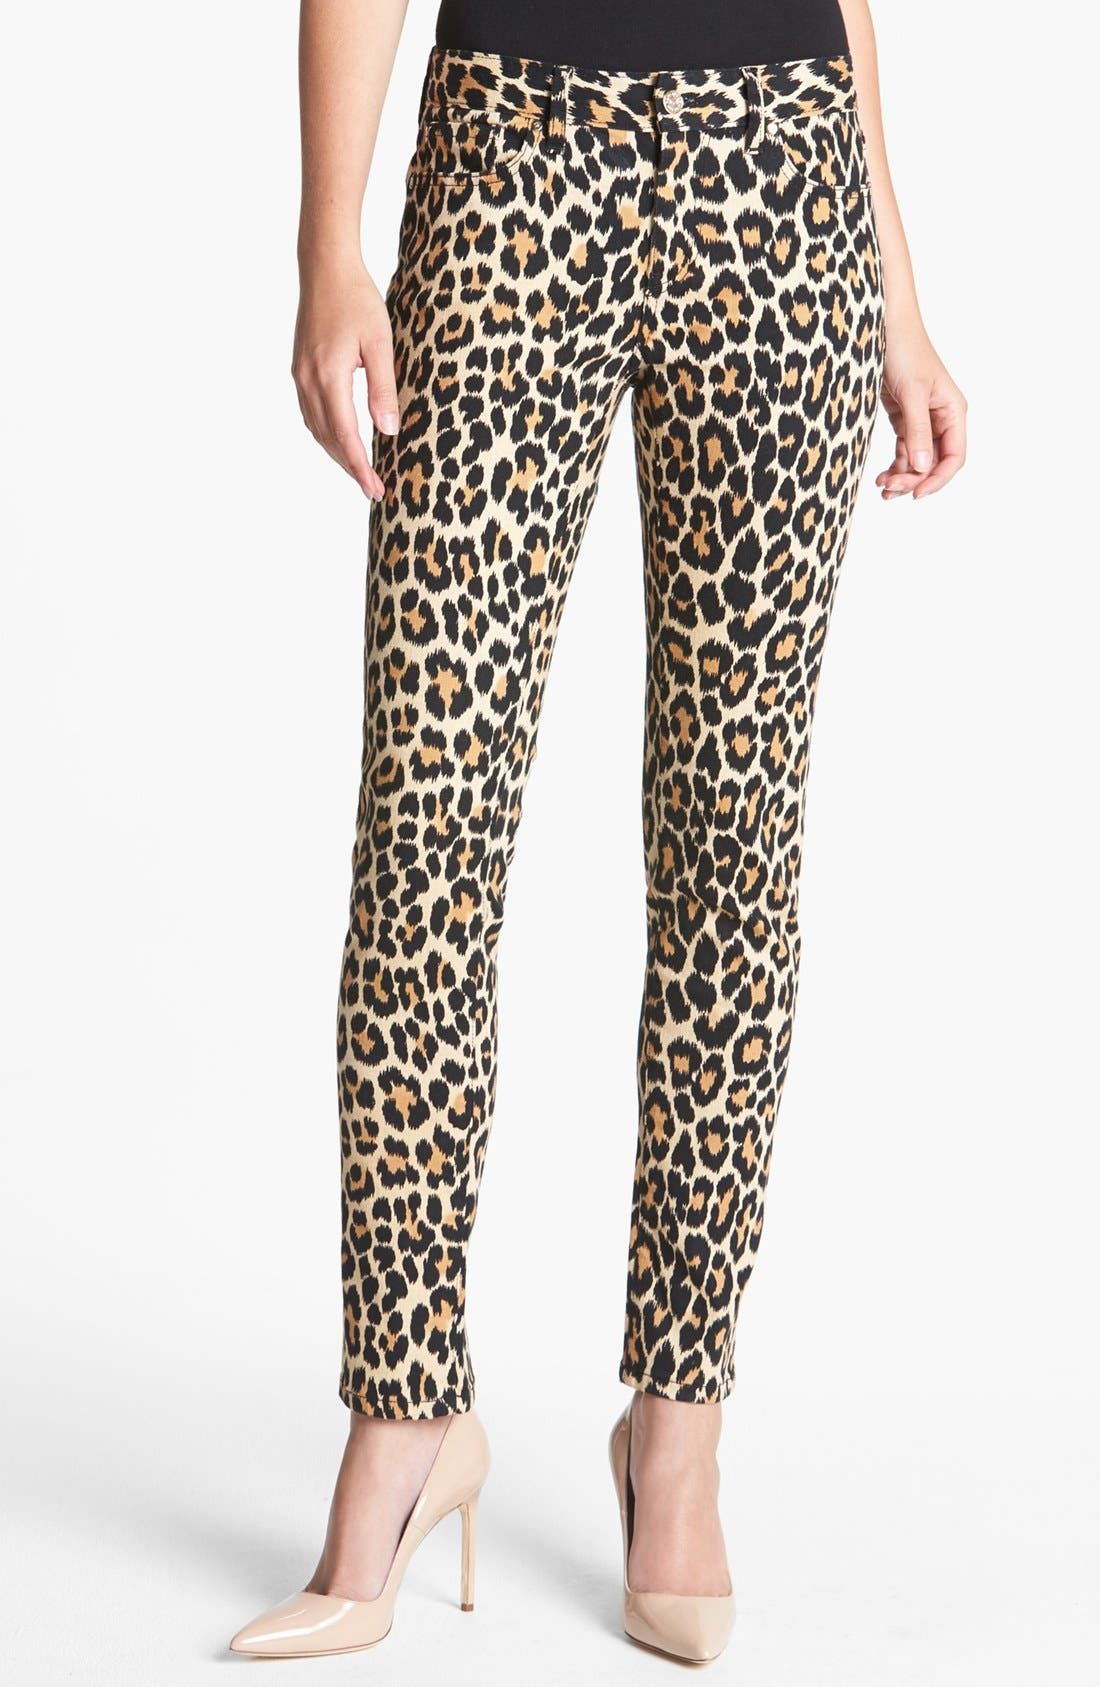 Alternate Image 1 Selected - kate spade new york 'broome street' print slim stretch jeans (neutral ikat animal)